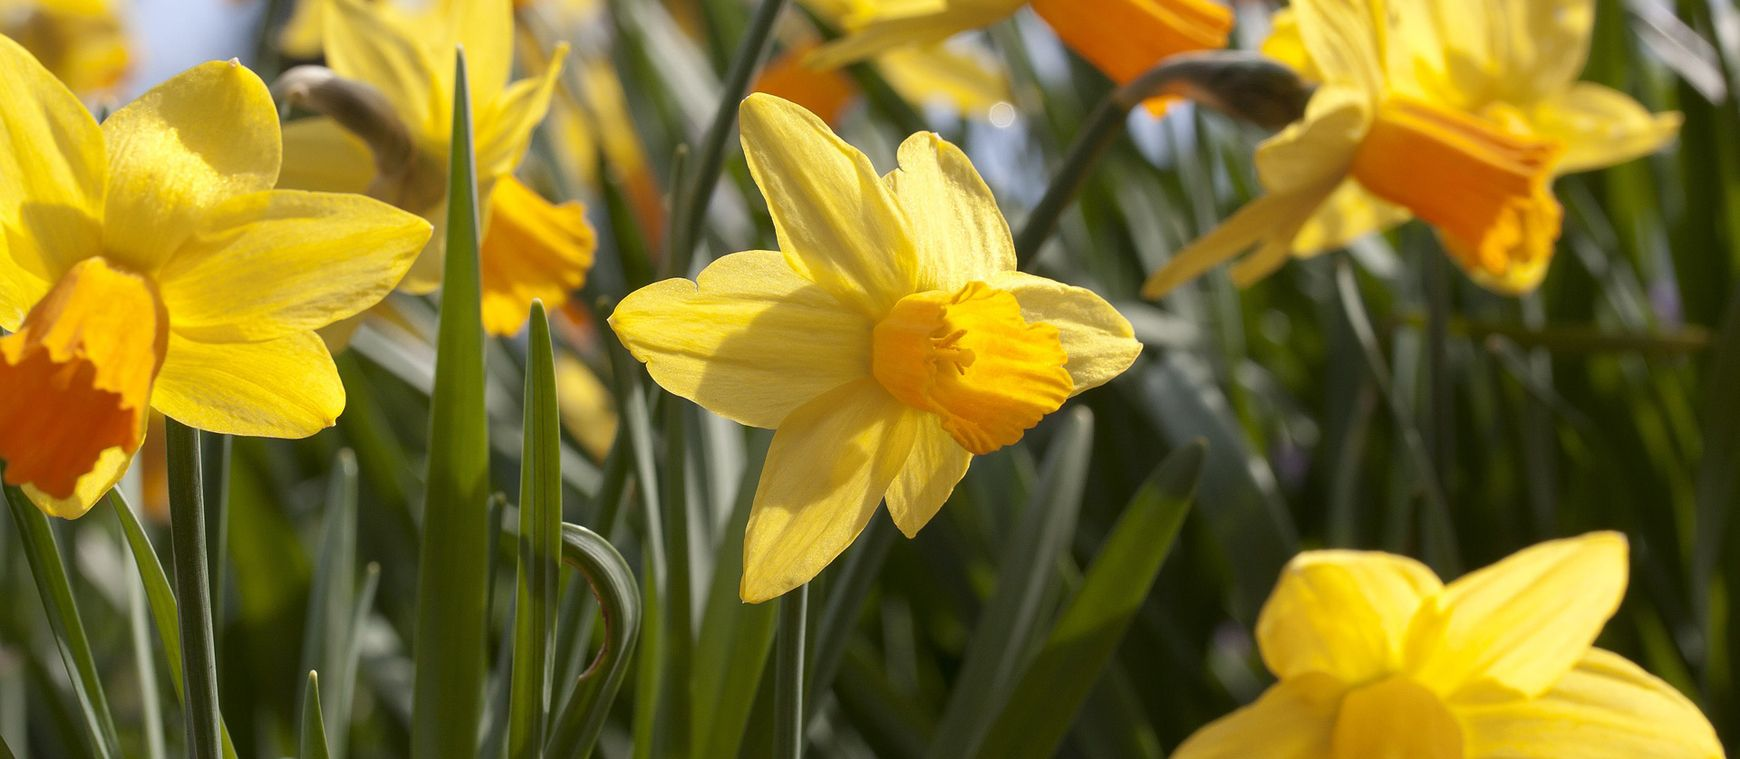 Hospice Daffodils arrive March 8!